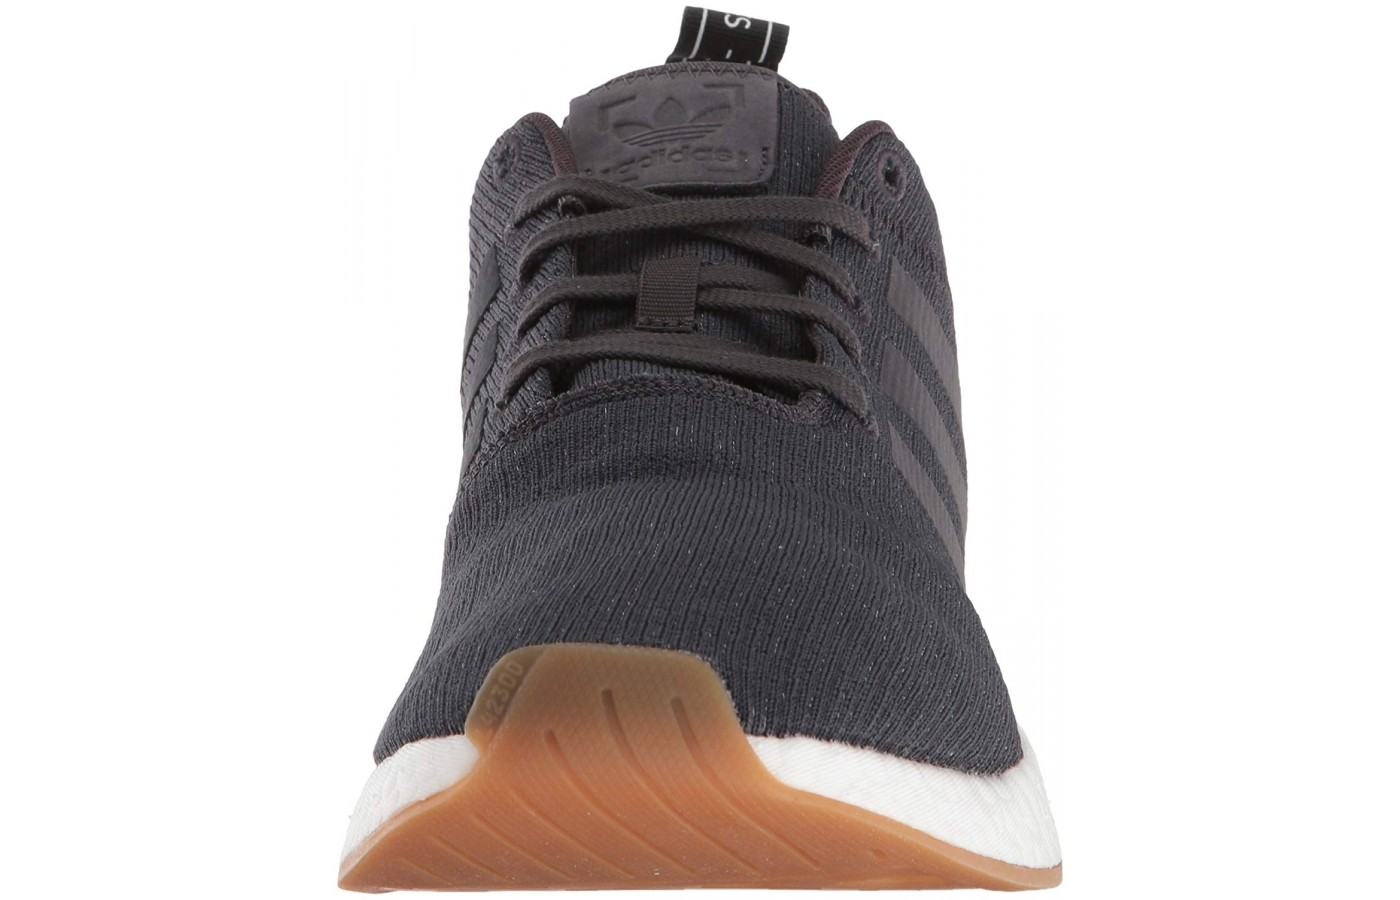 Adidas NMD_R2 front